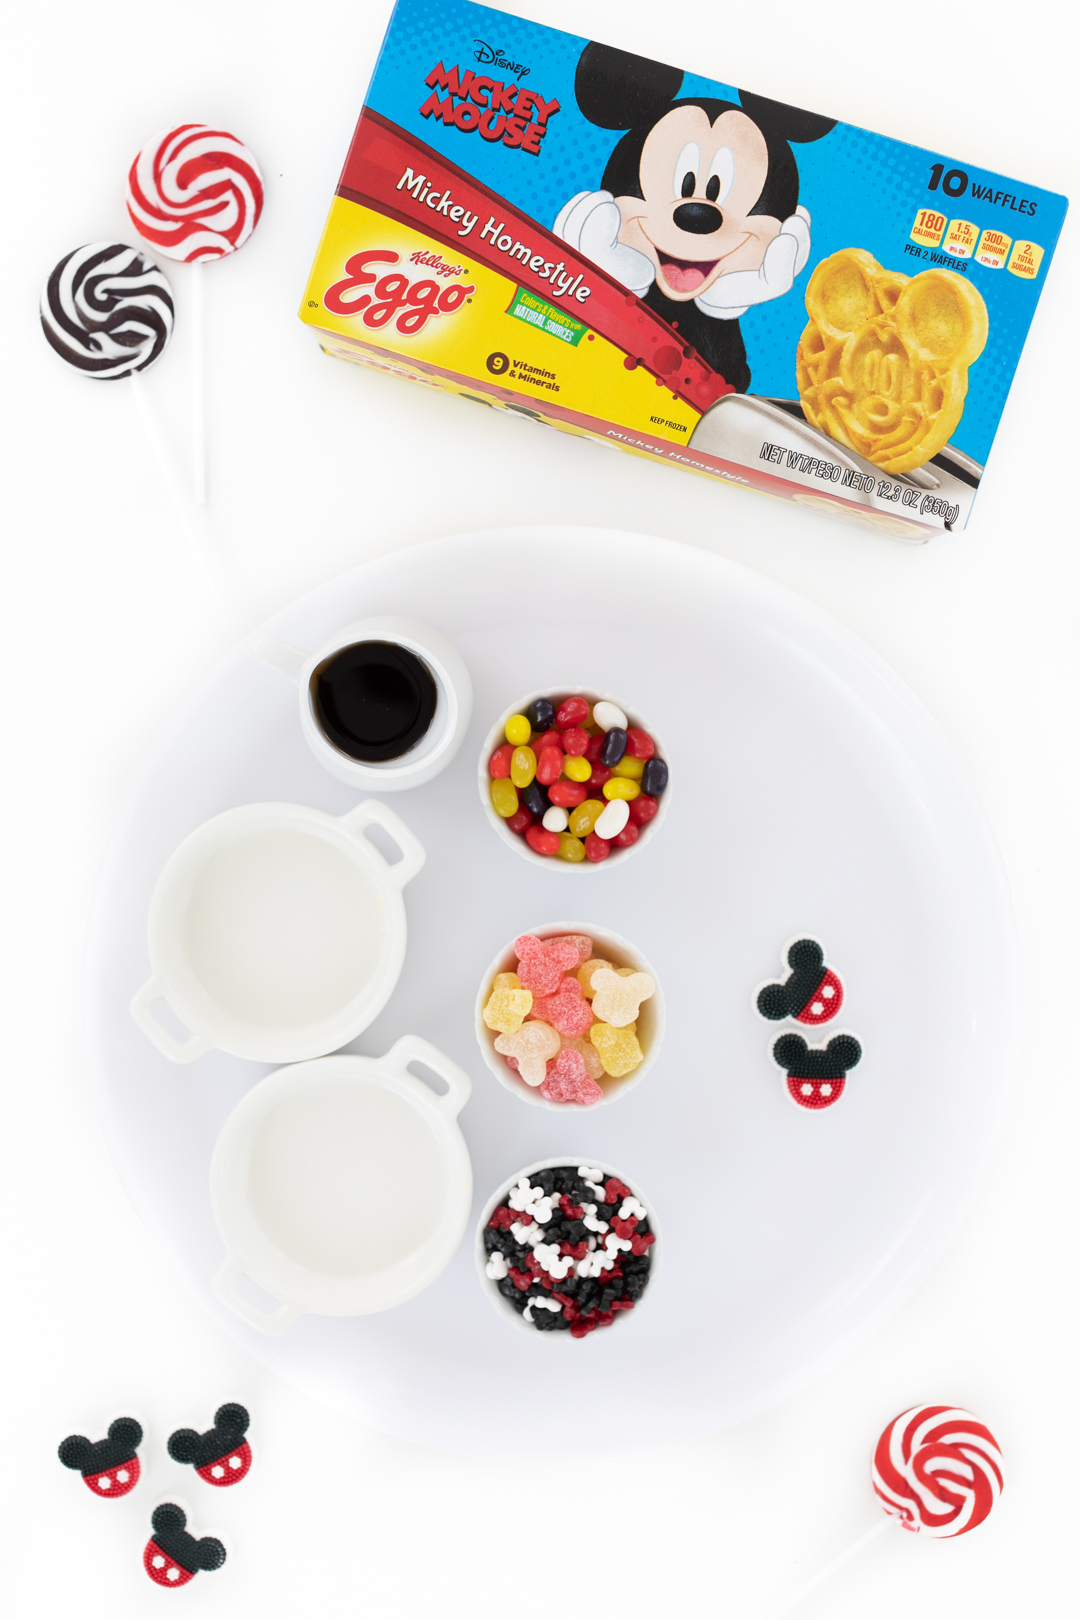 mickey mouse waffles from eggo